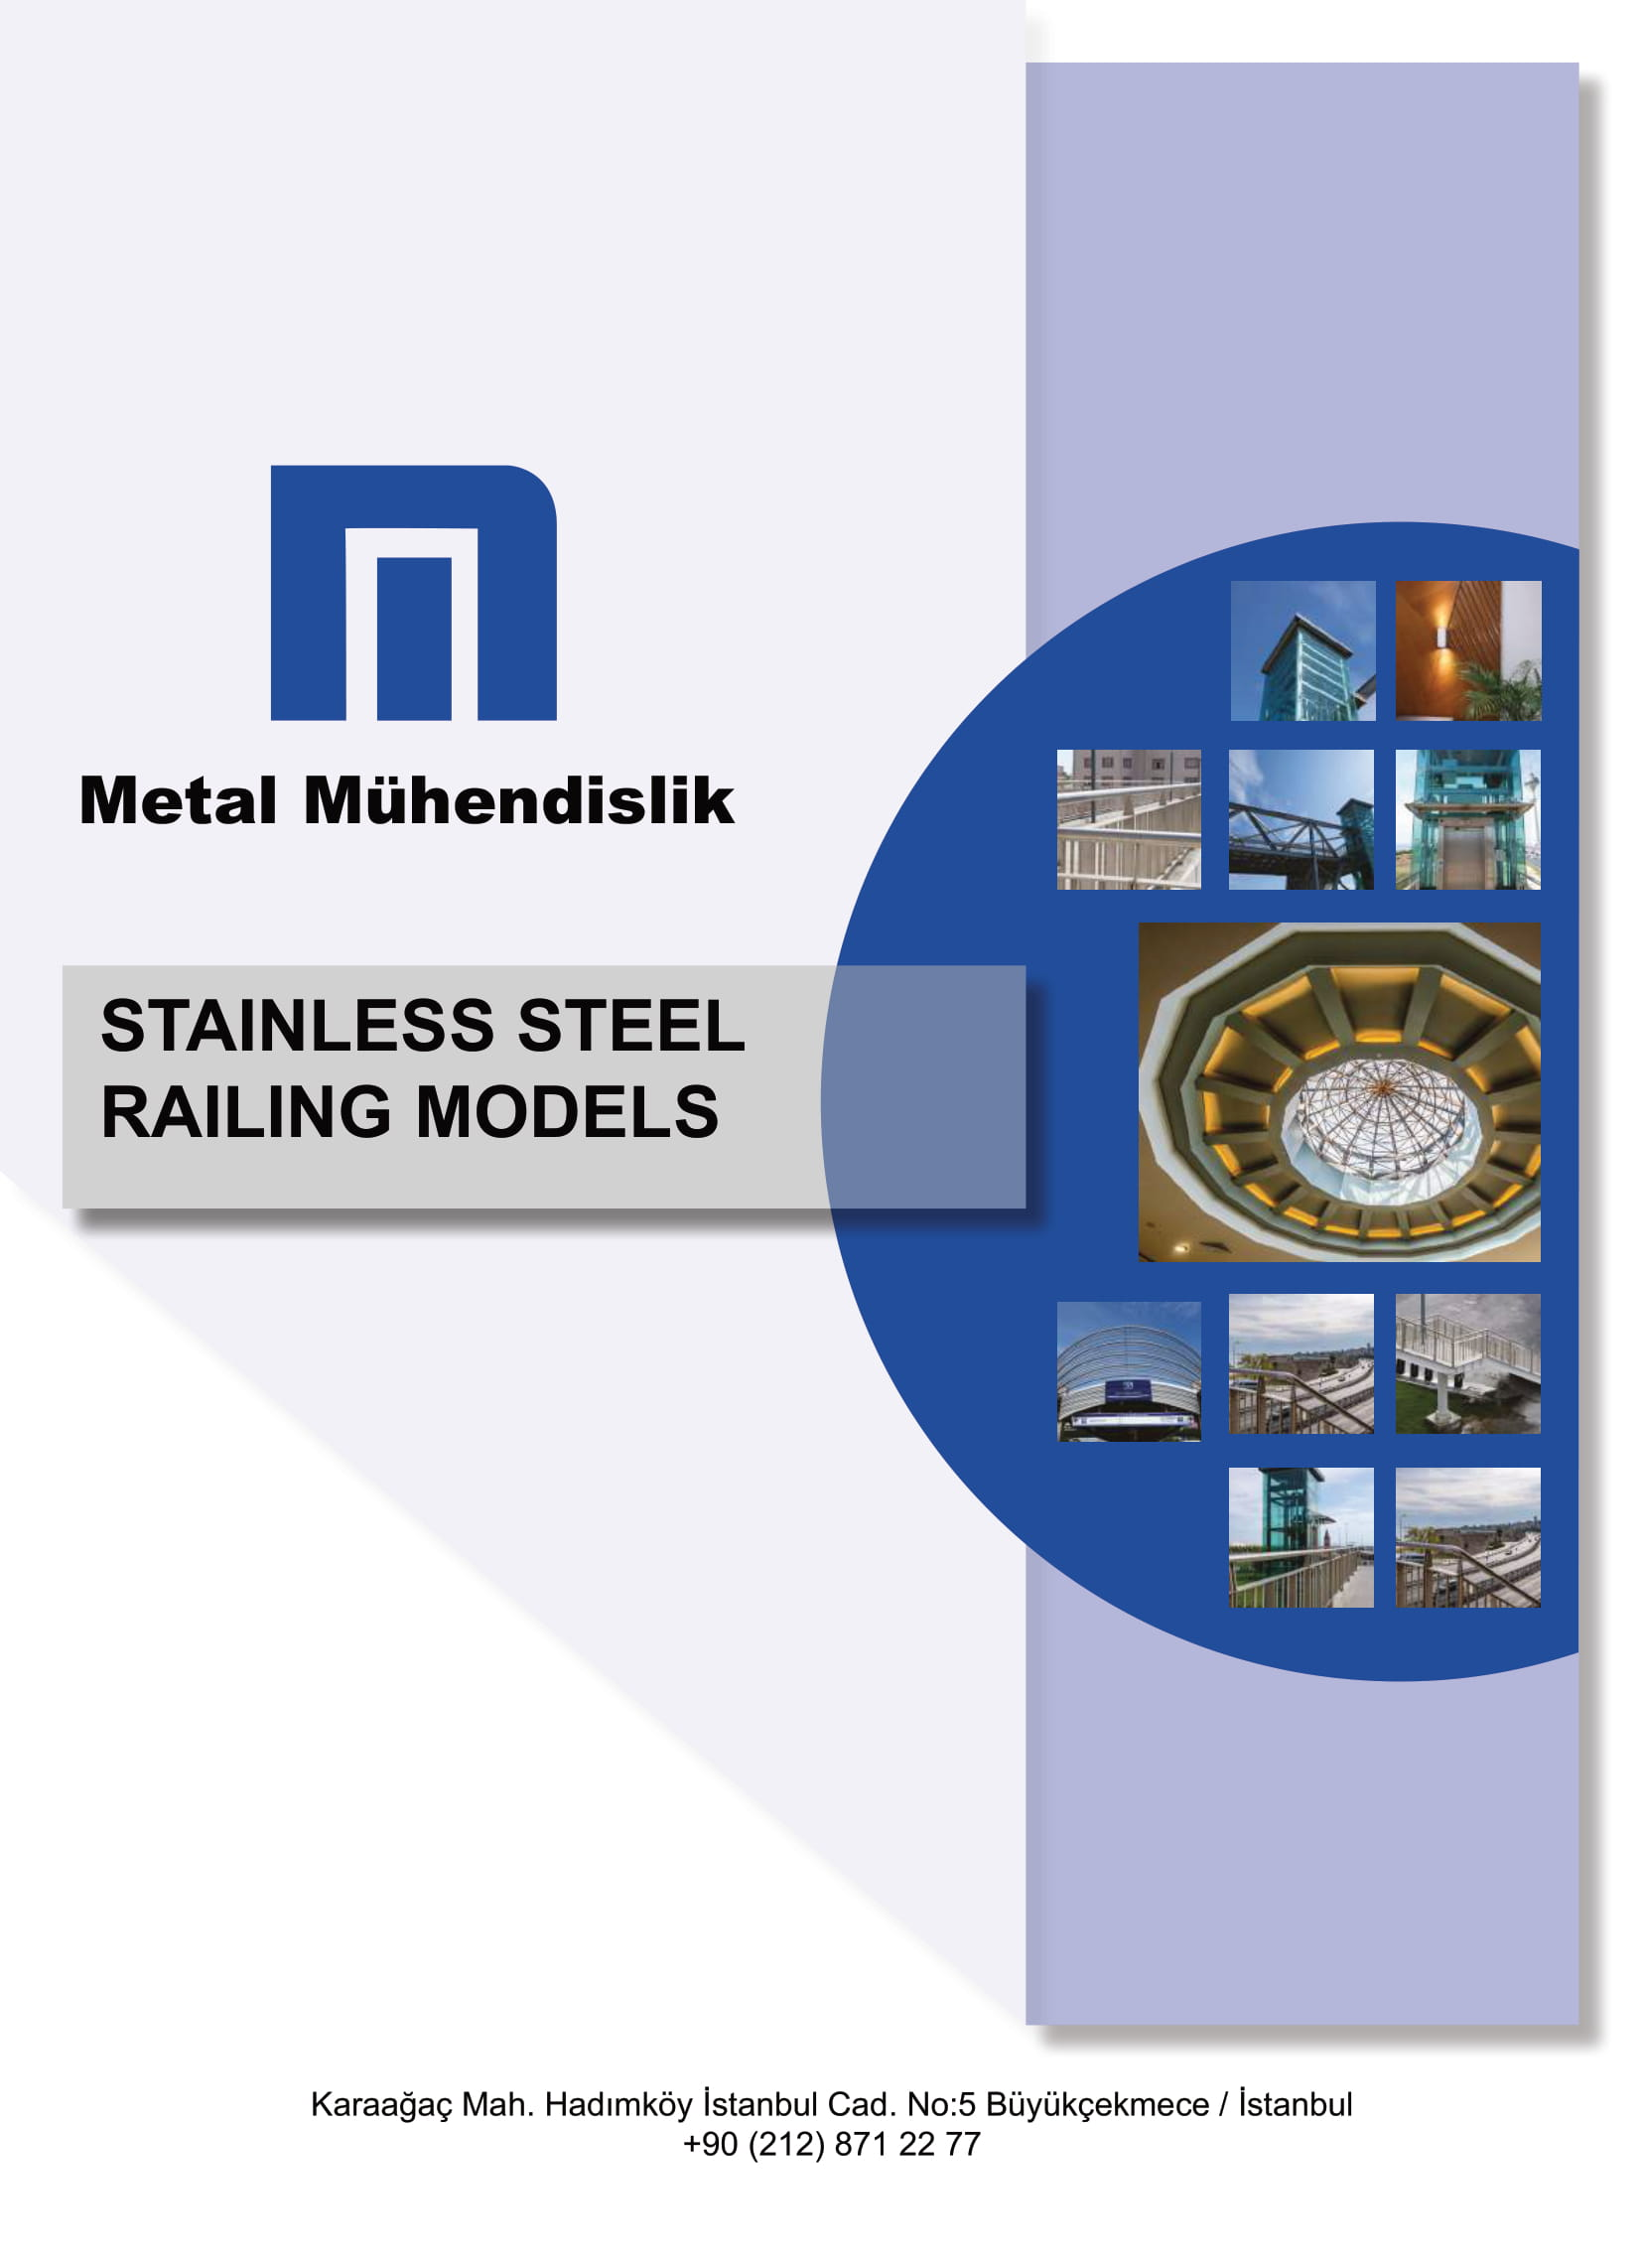 STAINLESS STEEL RAILING MODELS